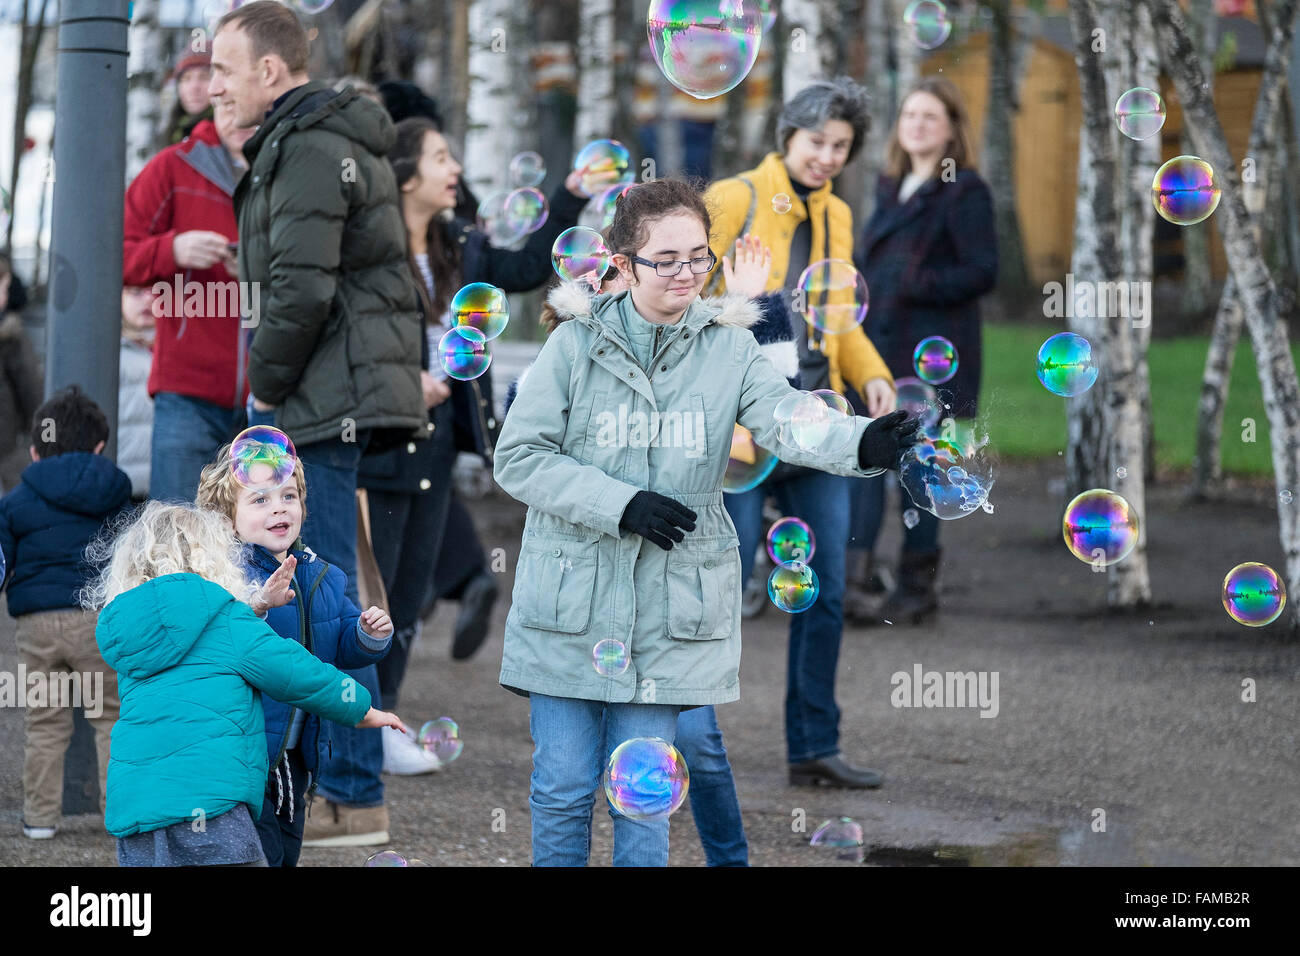 Excited children chasing bubbles created by a street entertainer on the South Bank in London. - Stock Image